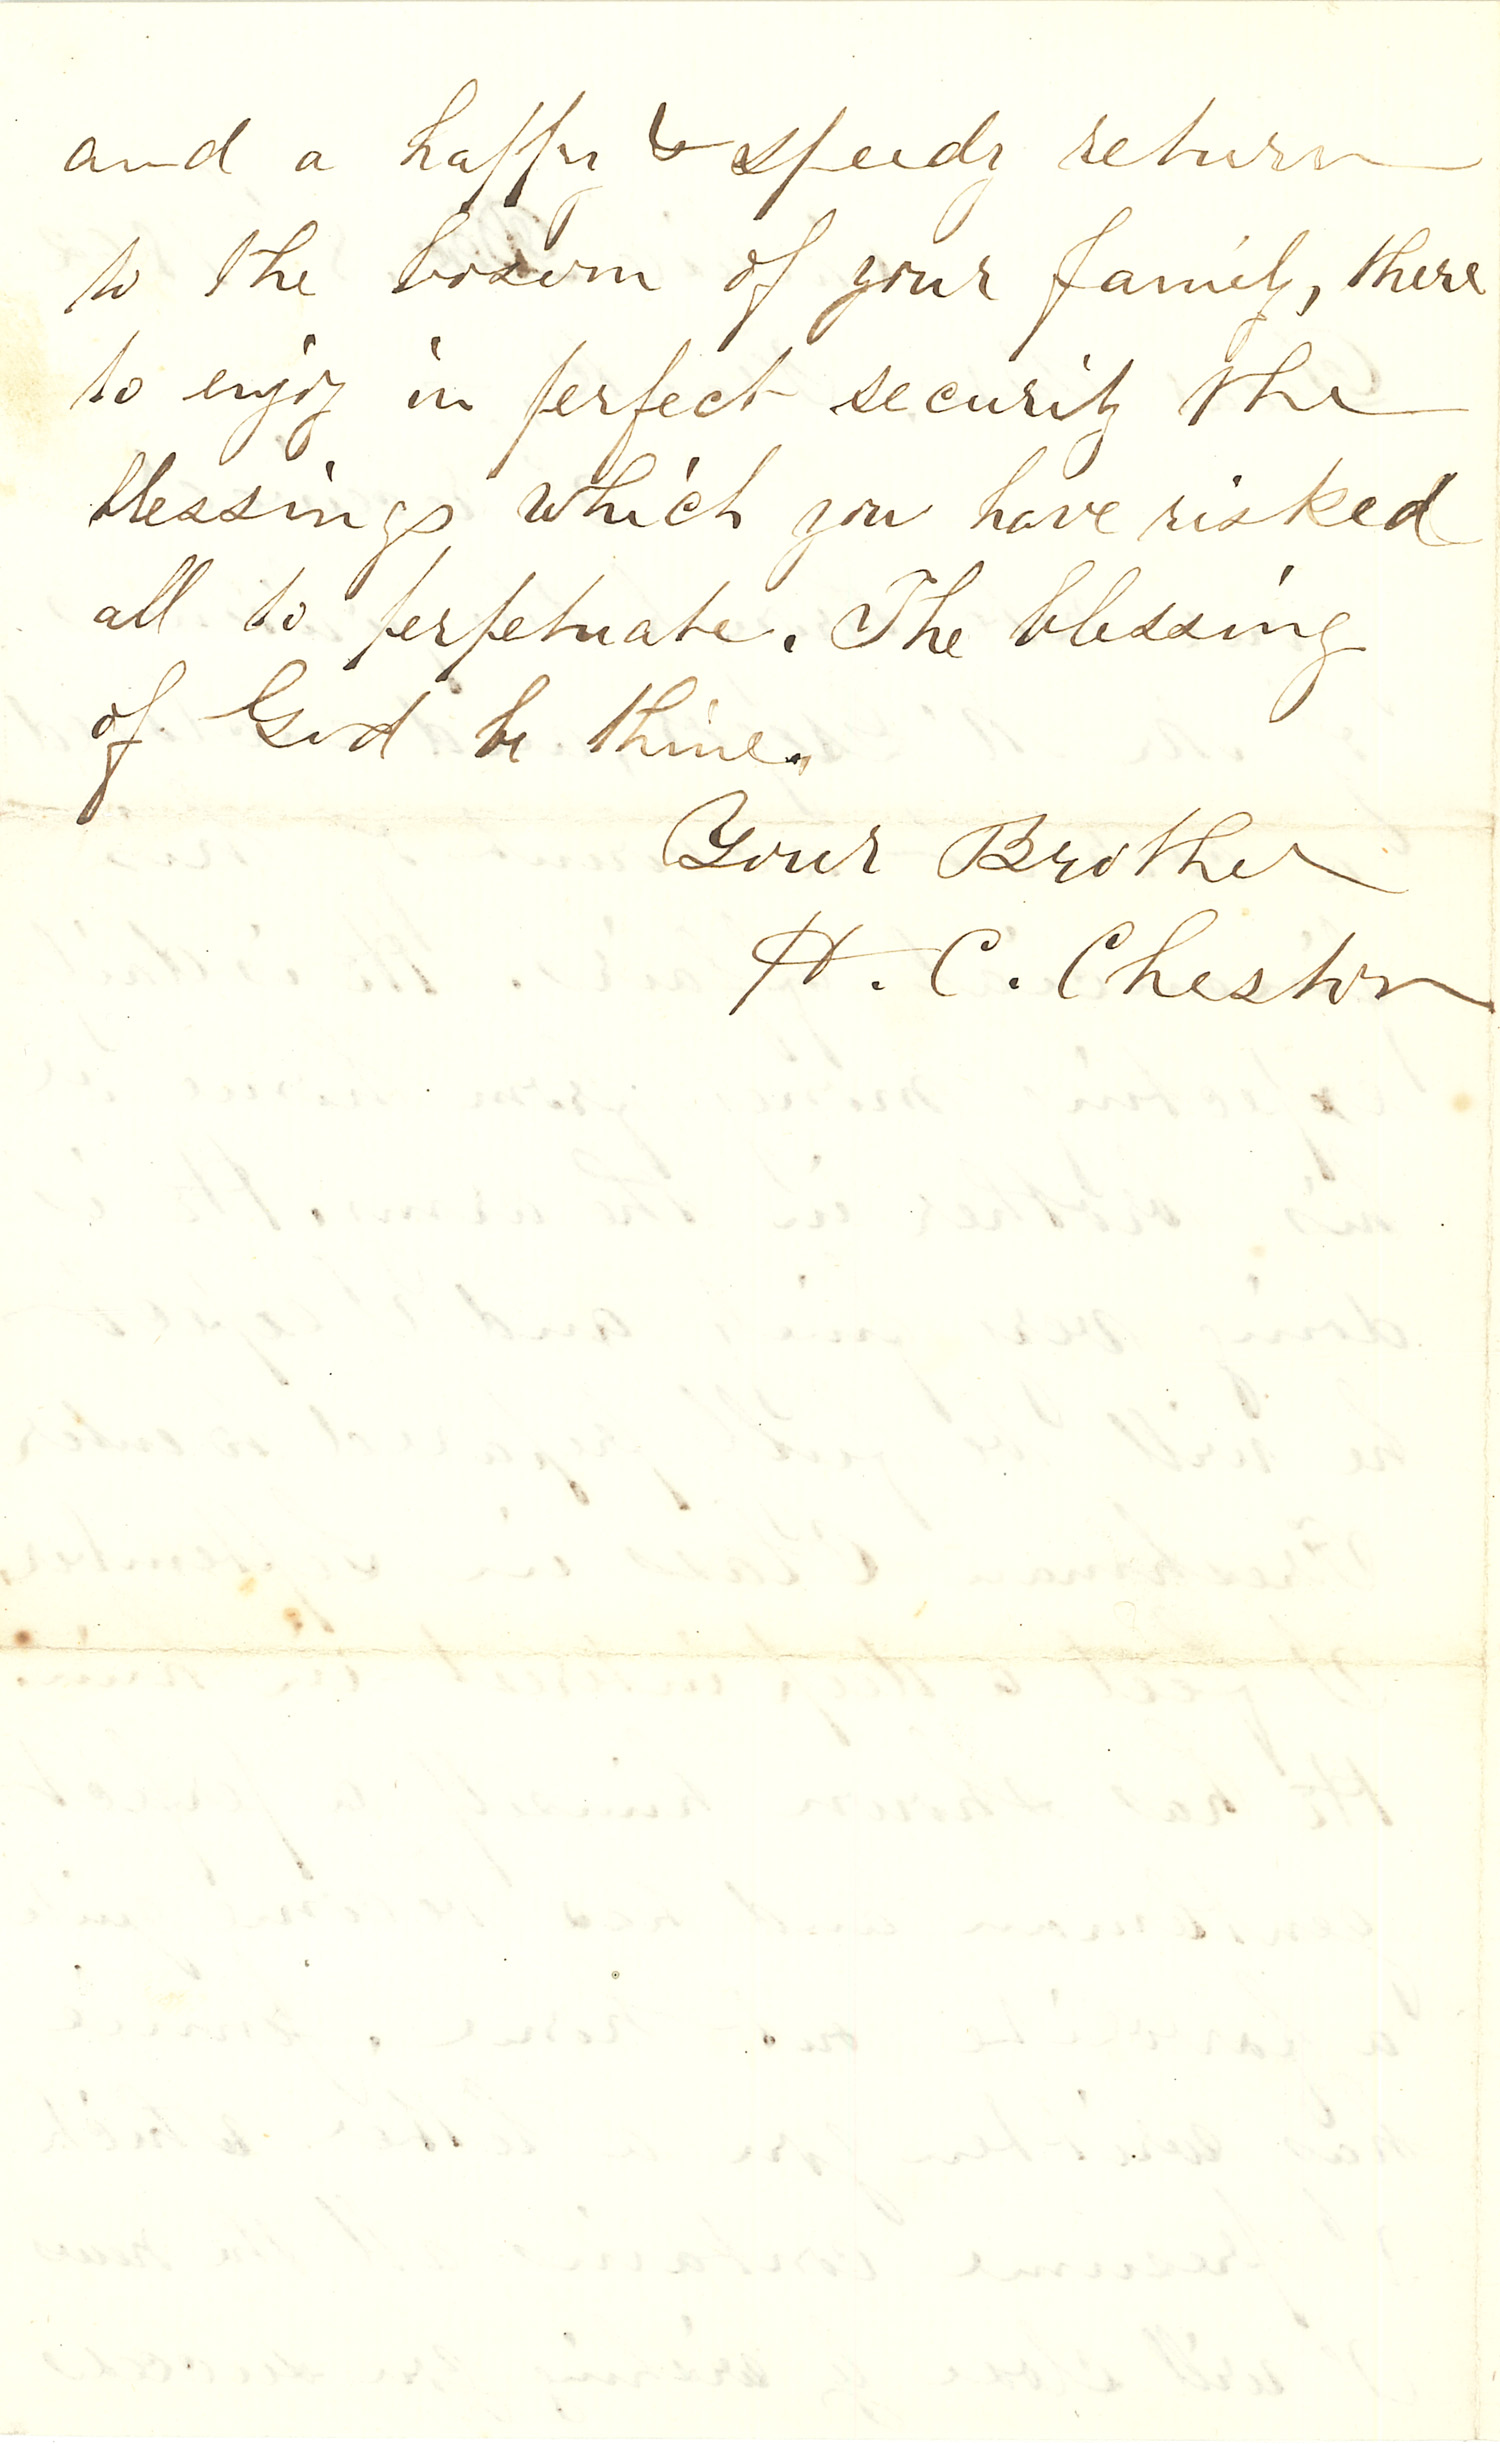 Joseph Culver Letter, December 8, 1862, Page 2